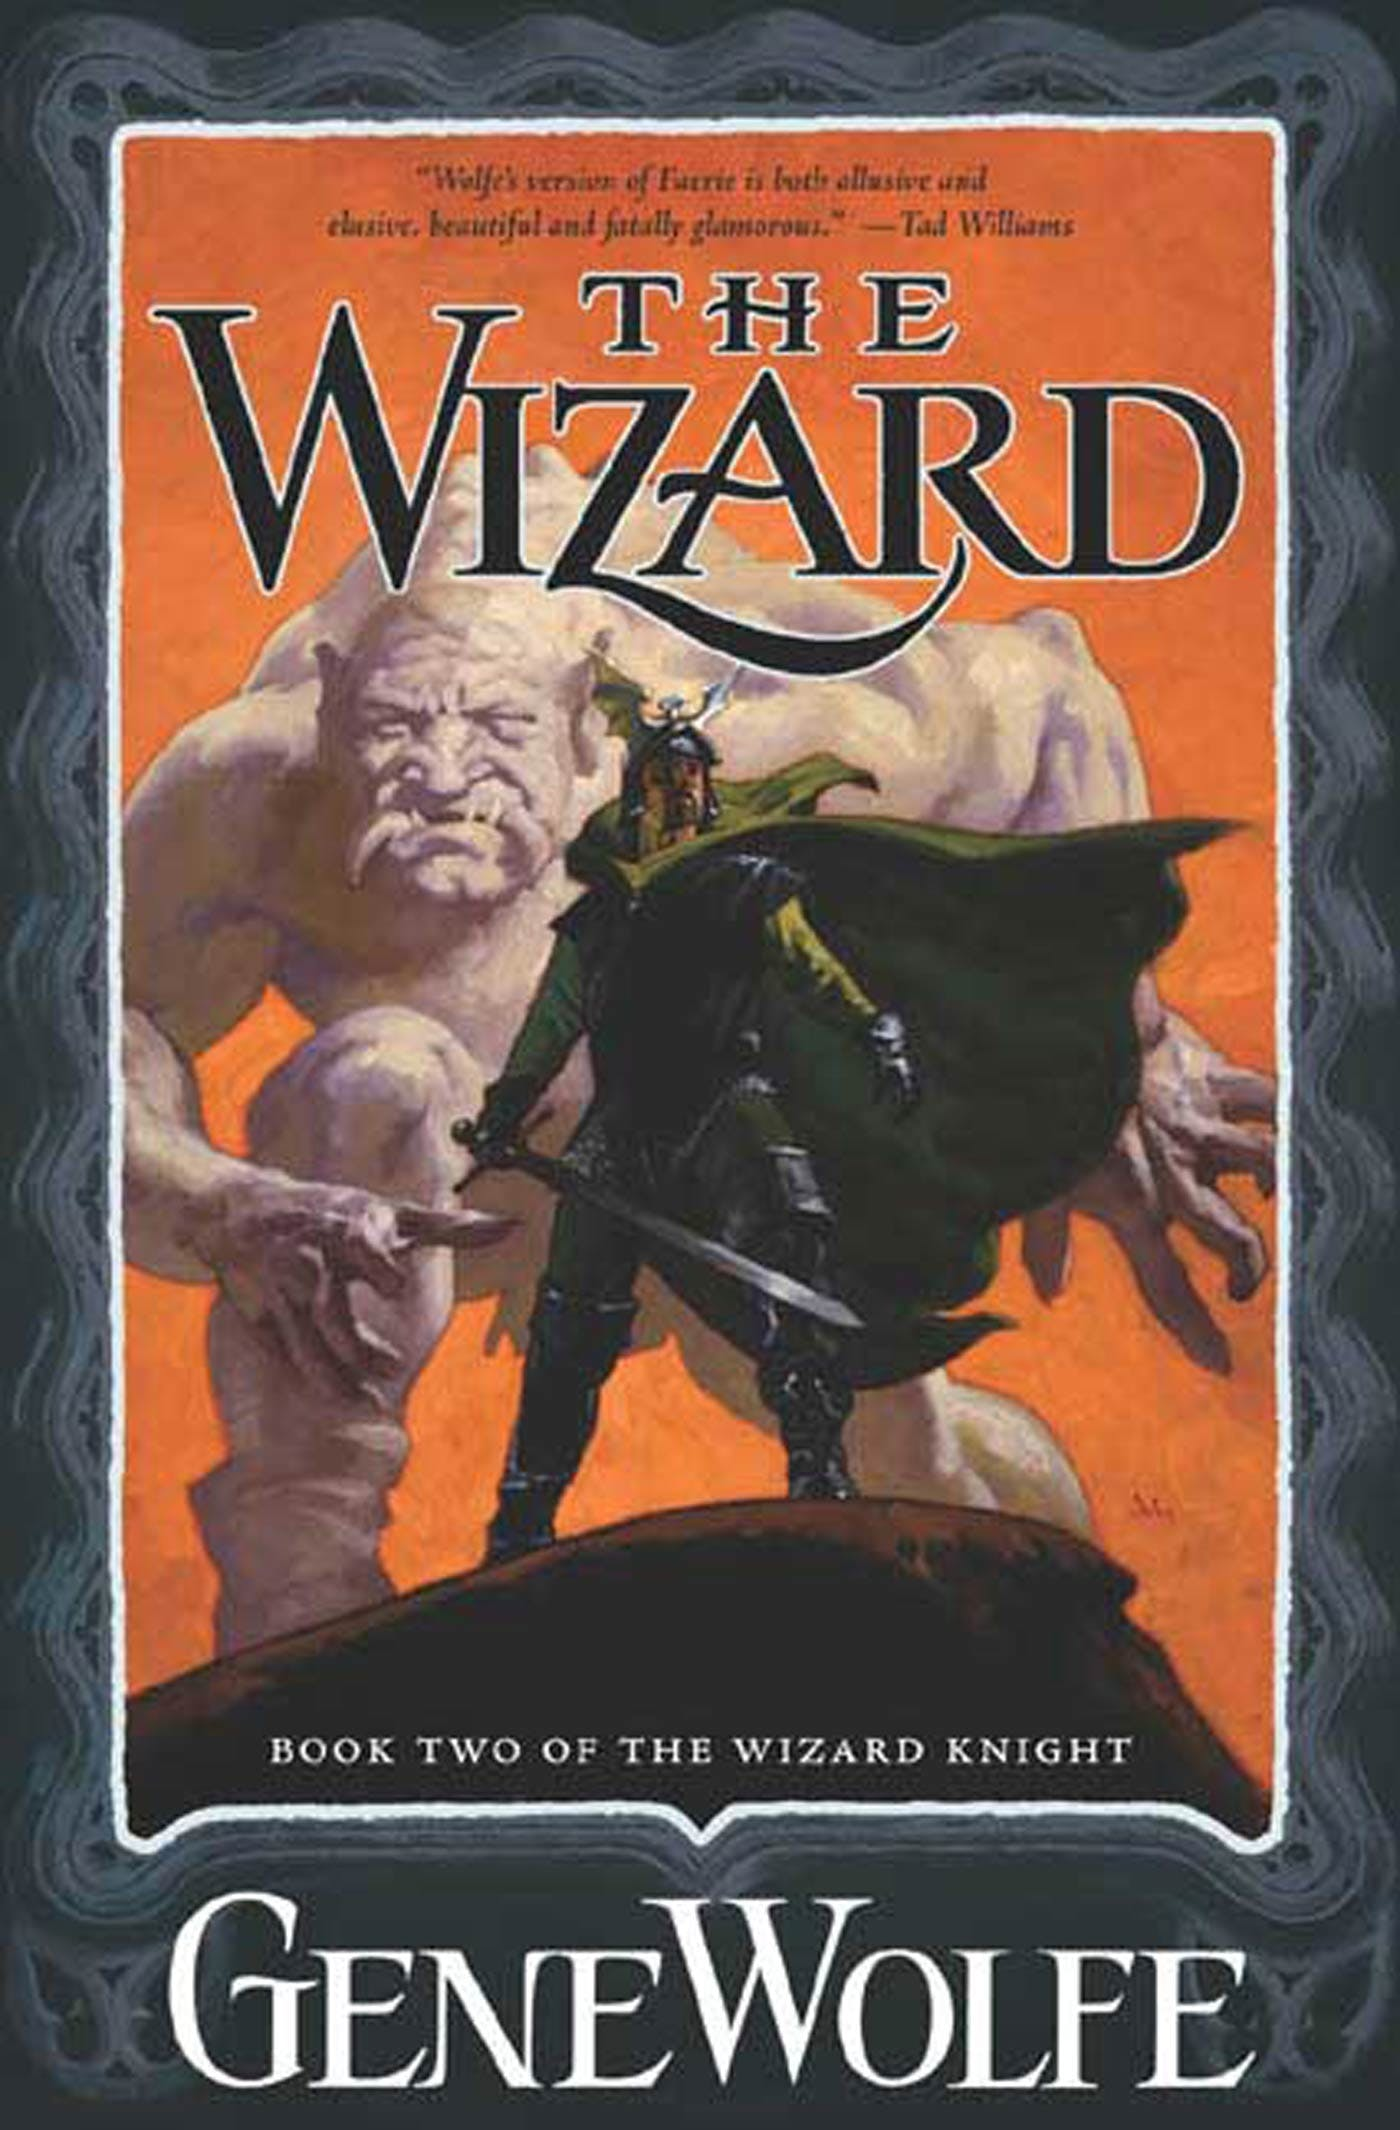 Image of The Wizard